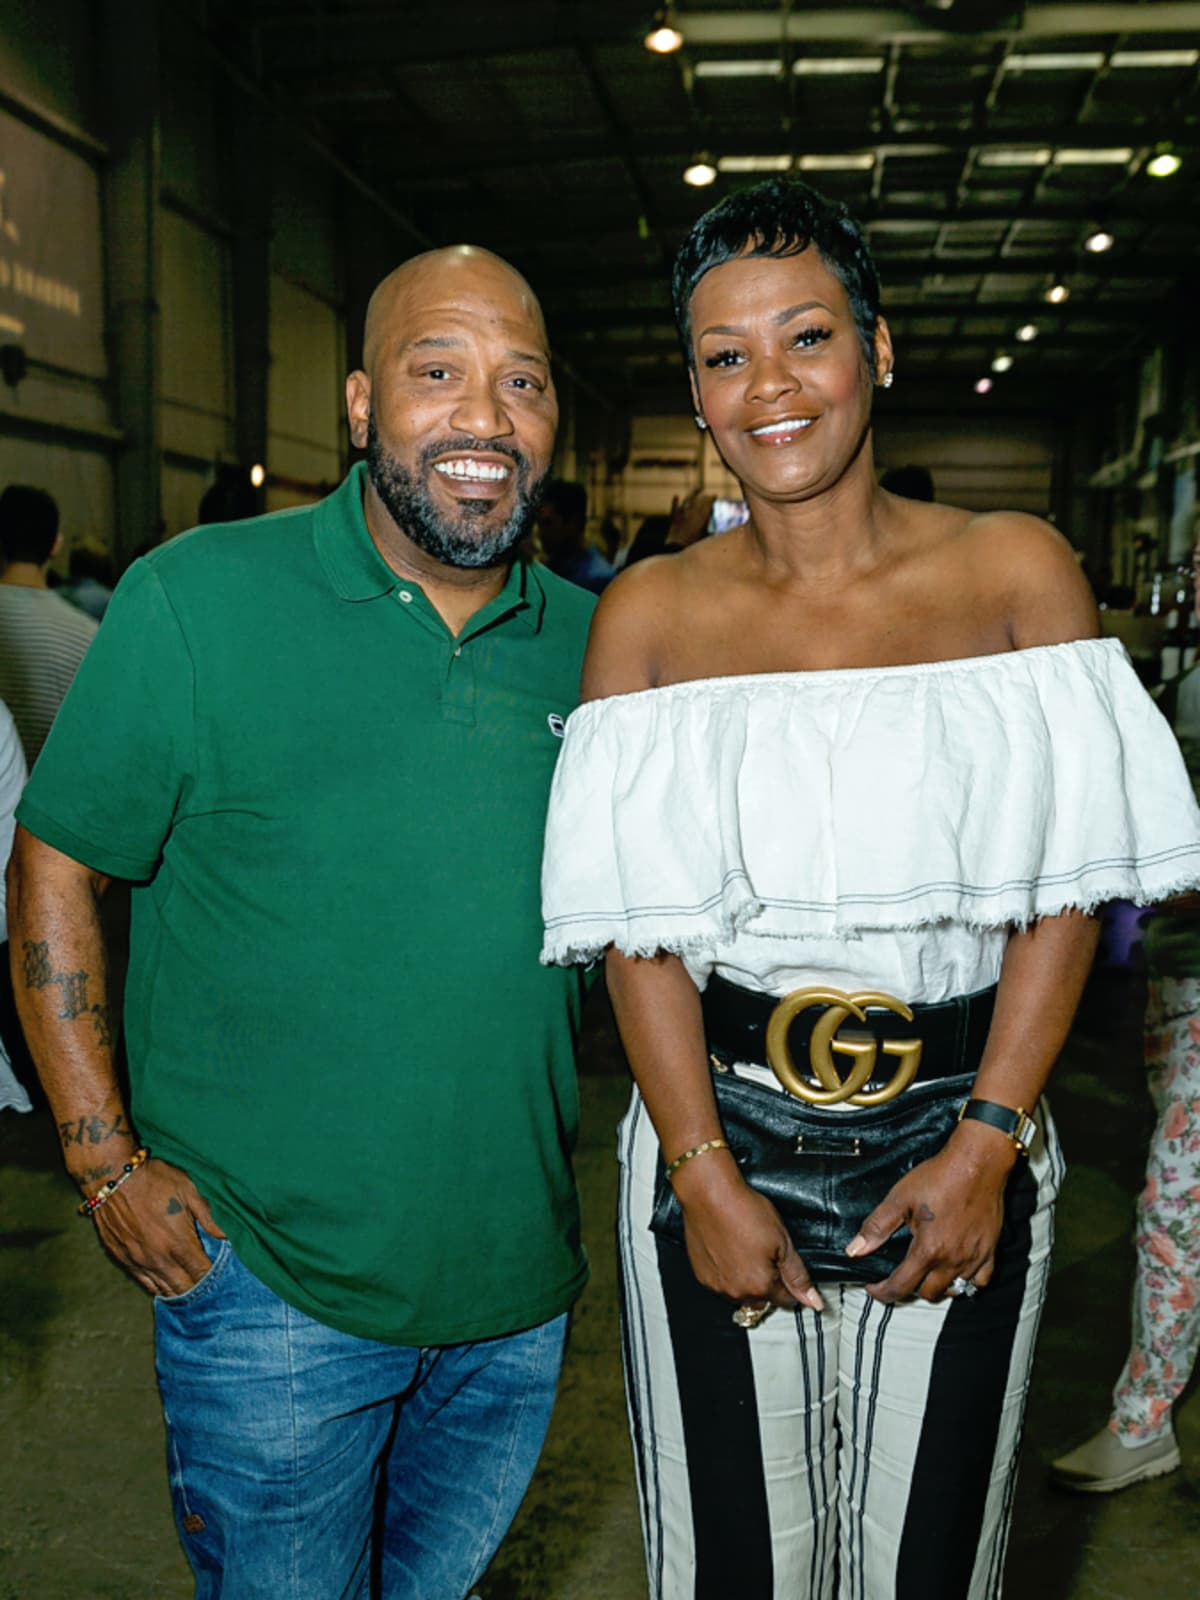 Tastemaker Awards 2018 Bun B and Queenie